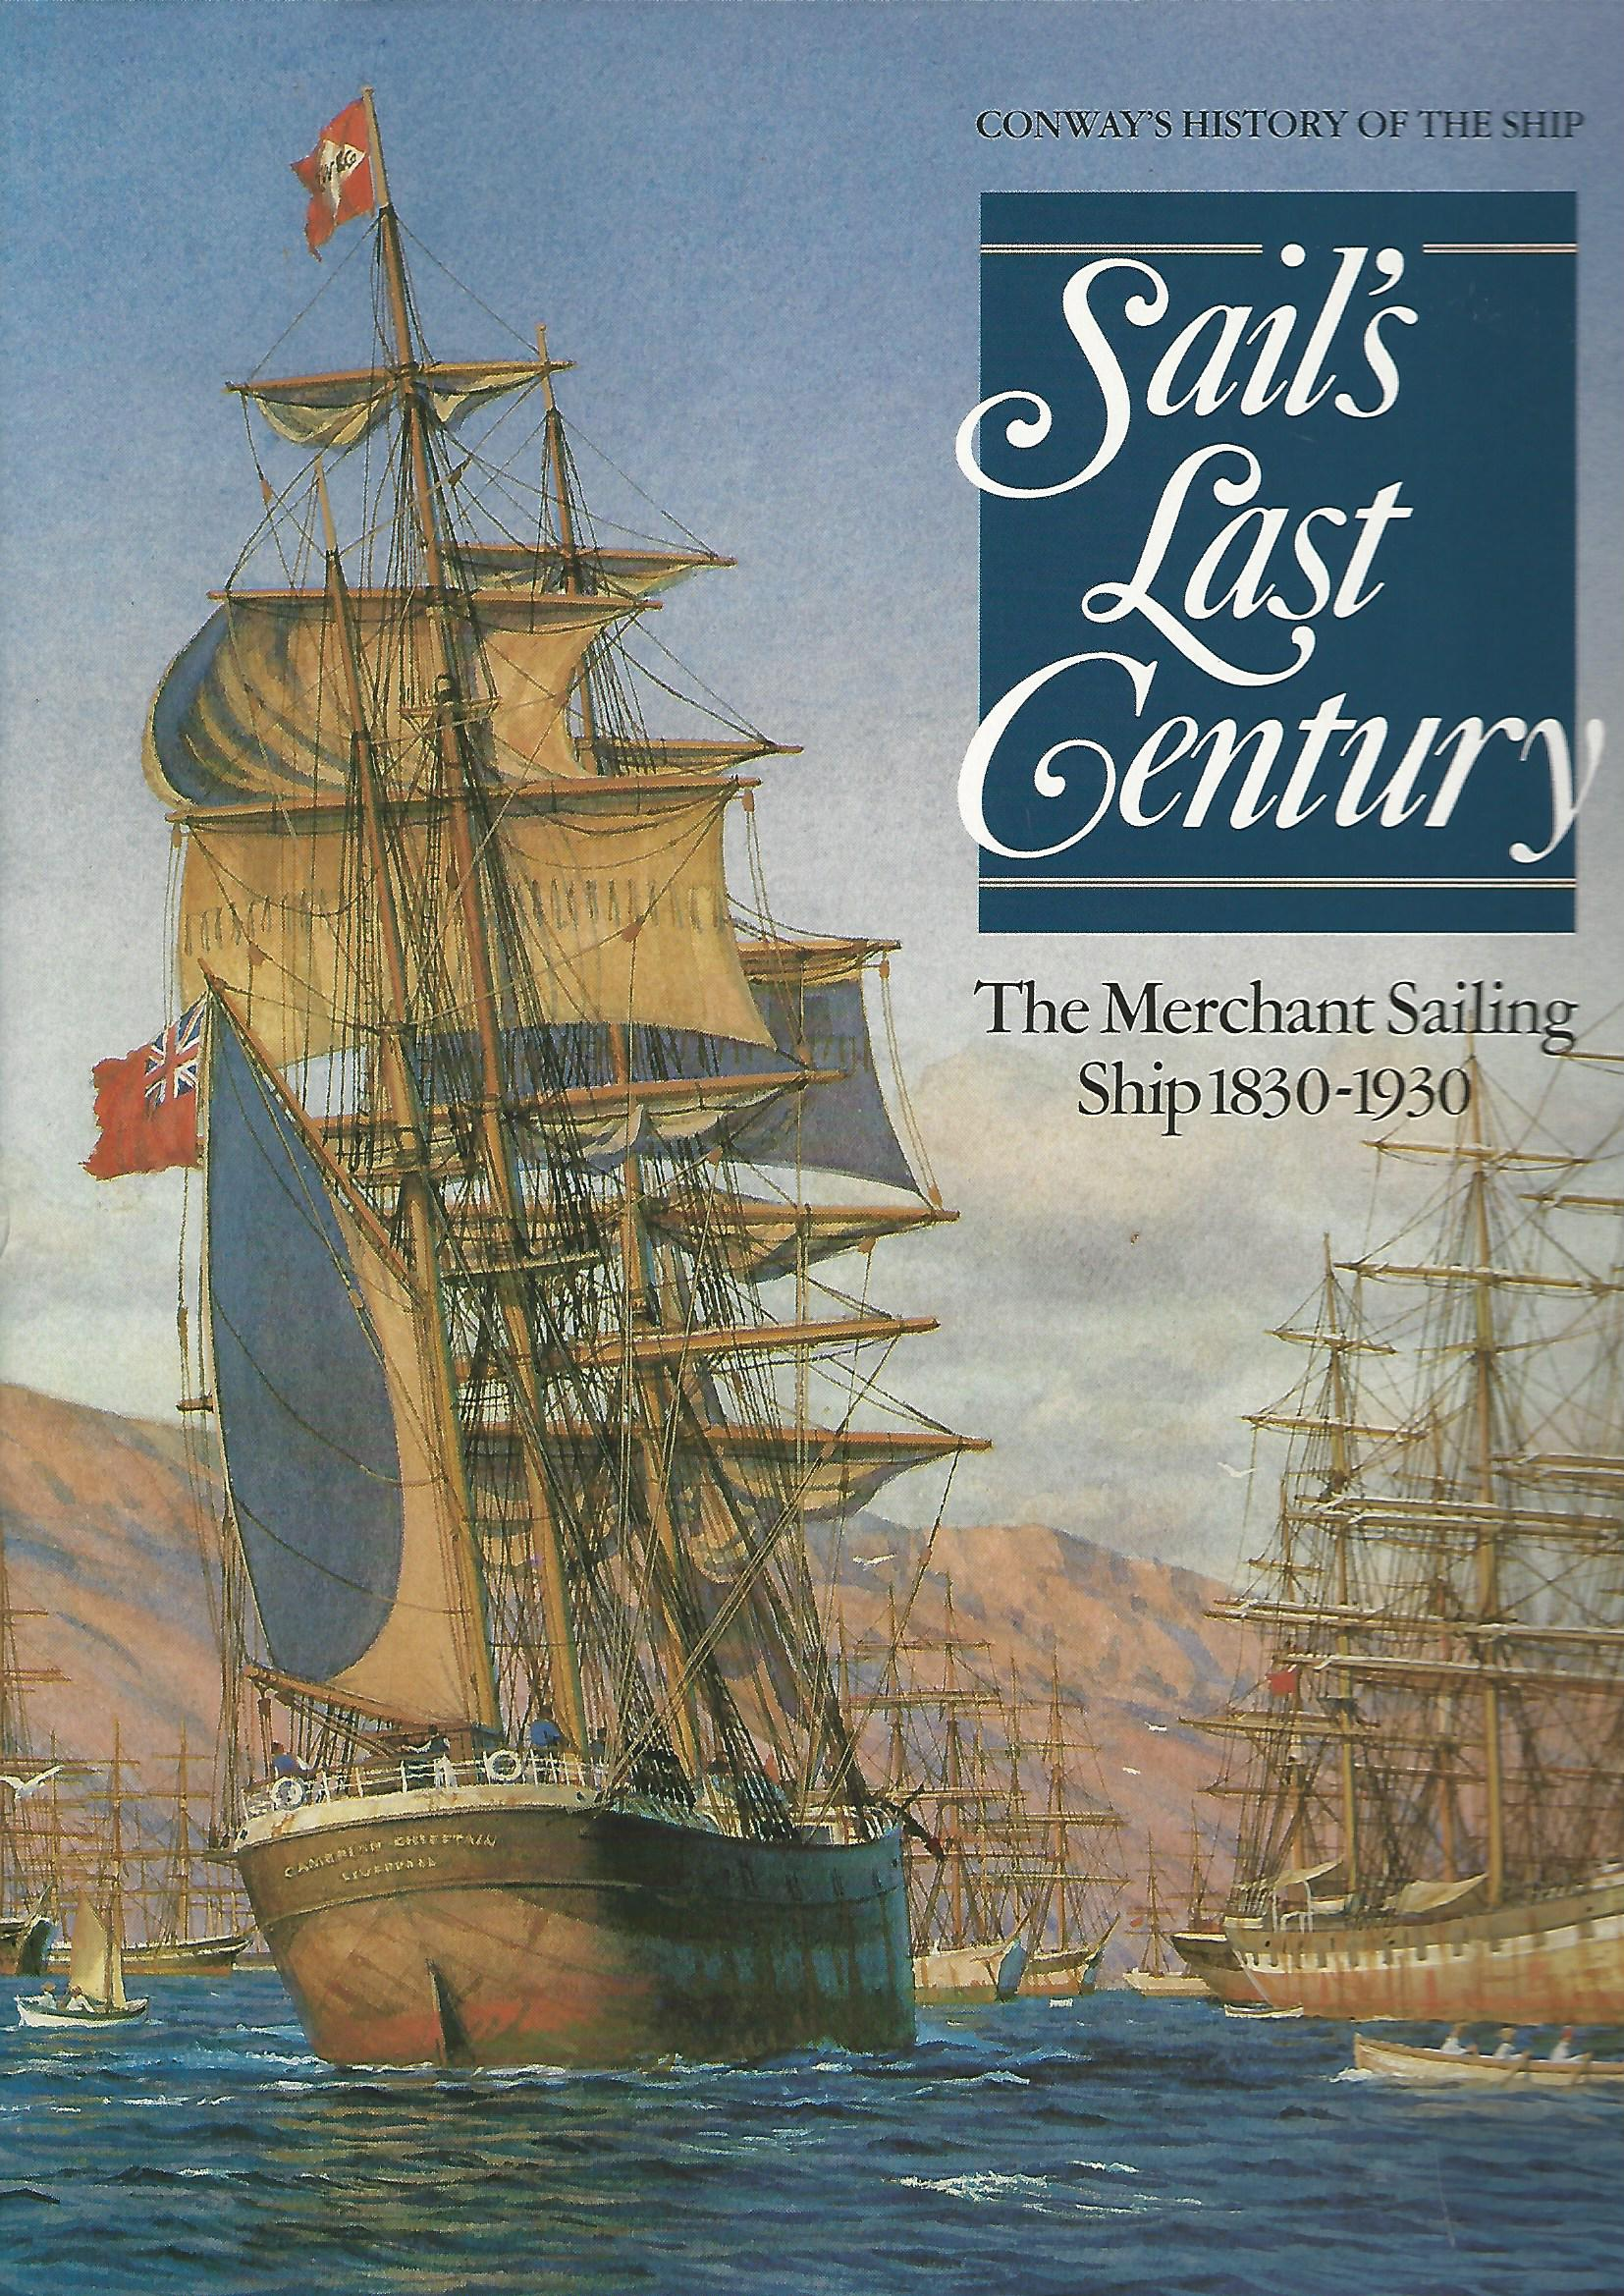 Image for Sail's Last Century: The Merchant Sailing Ship 1830-1930. (Conway's History of the Ship)